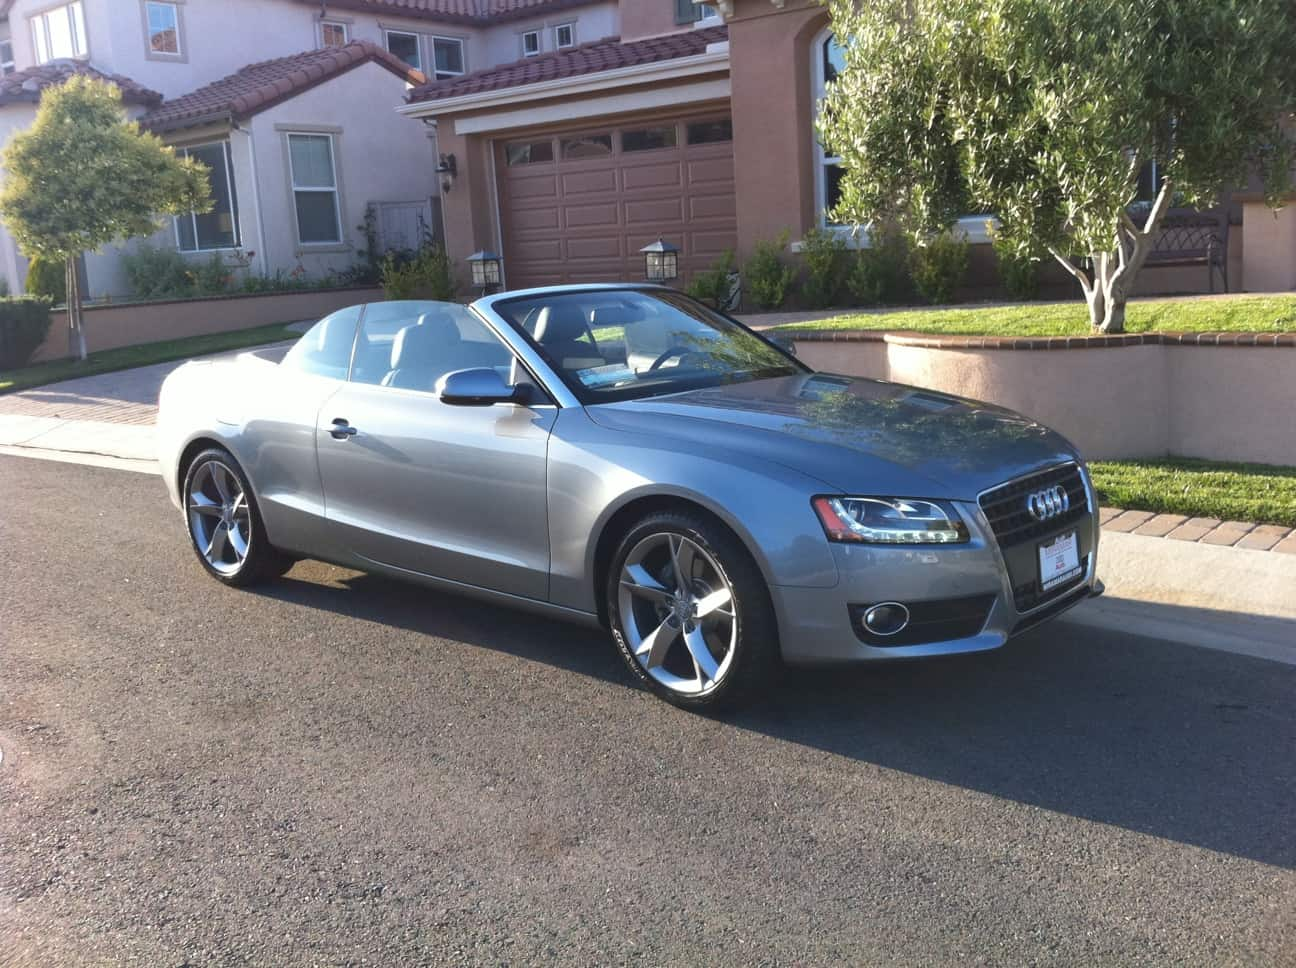 The New Toy – Audi A5 Convertible